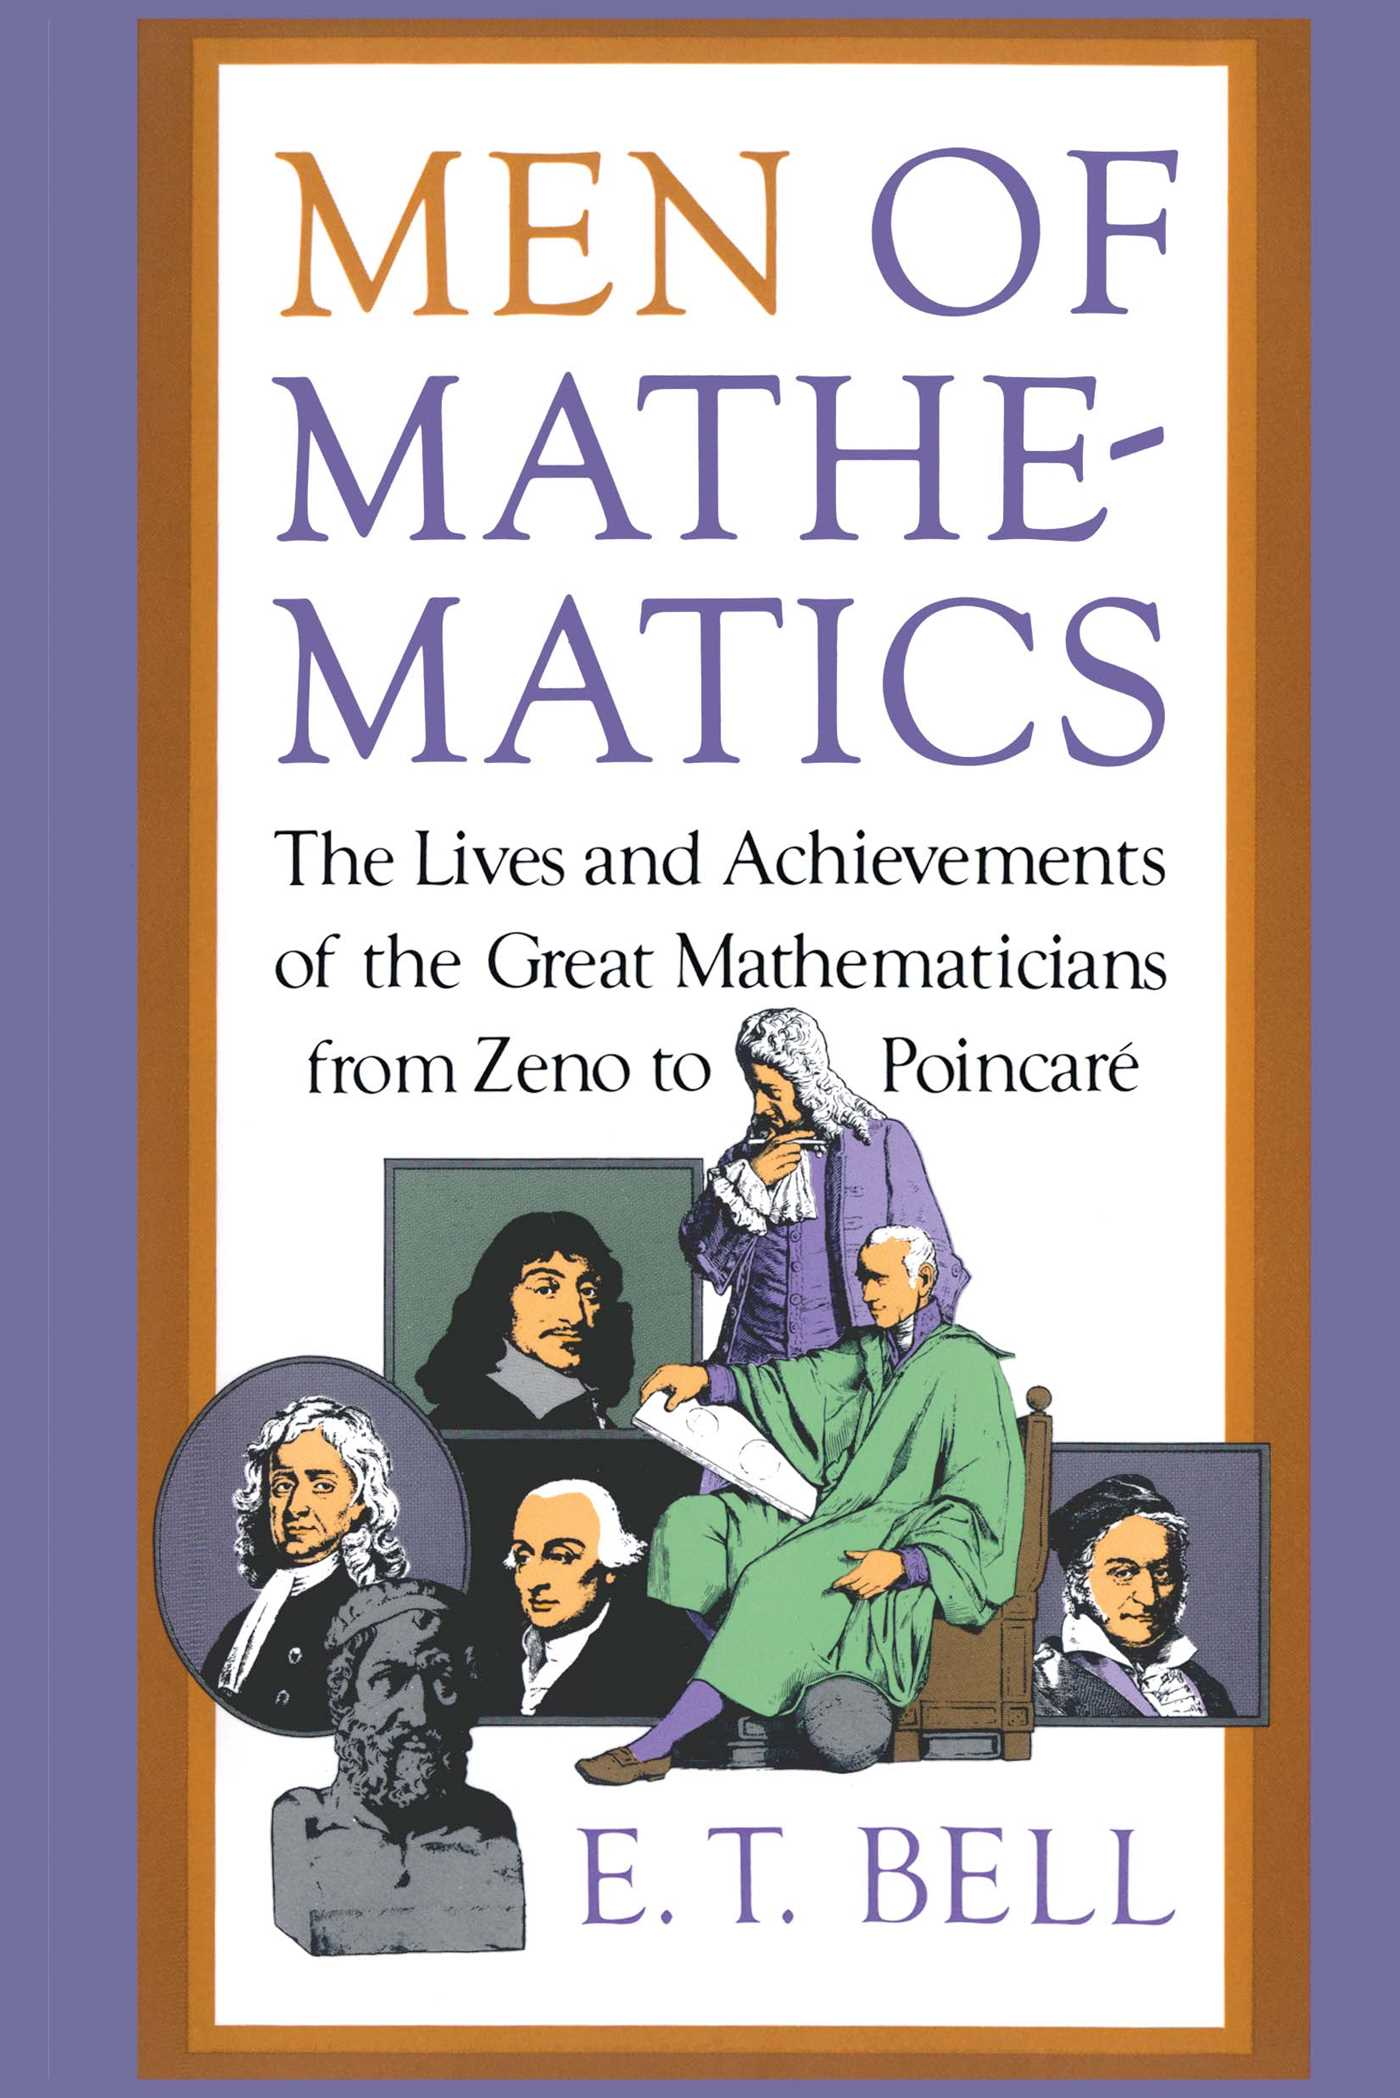 Men-of-mathematics-9780671628185_hr